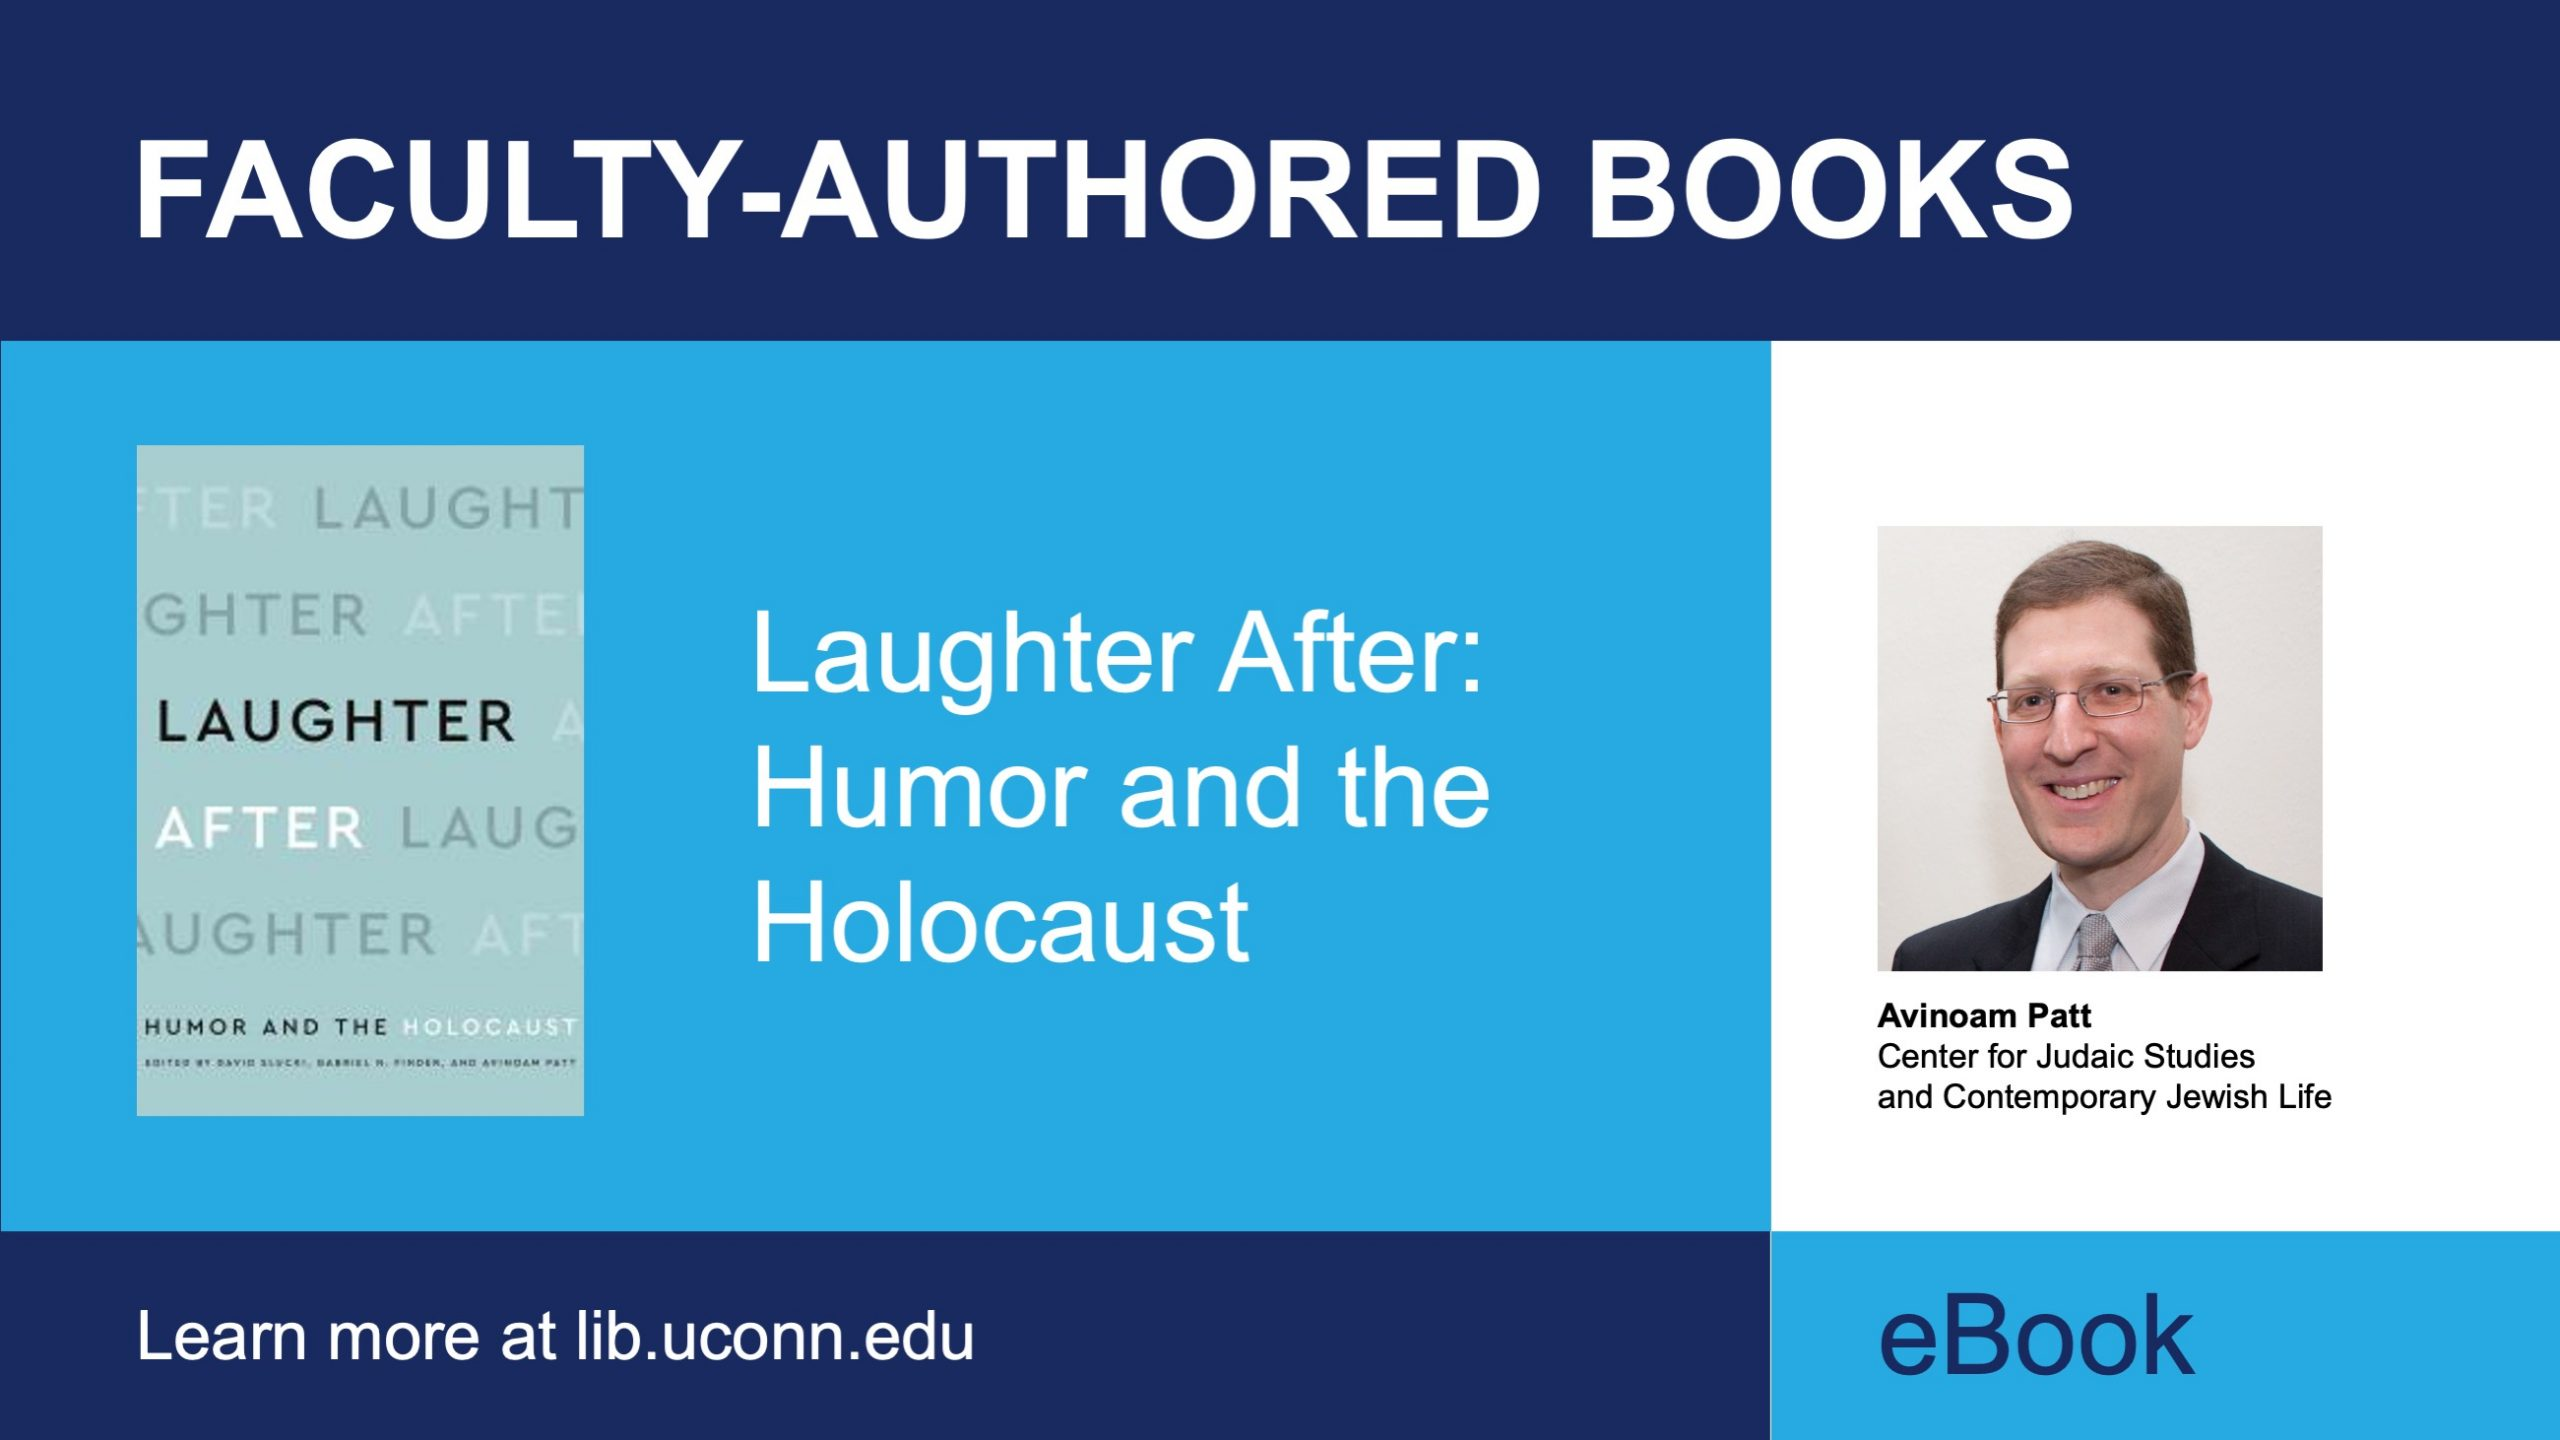 Faculty-Authored Books. Learn more at lib.uconn.edu. eBook. Title: Laughter After: Humor and the Holocaust Author: Avinoam Patt Department: Center for Judaic Studies and Contemporary Jewish Life